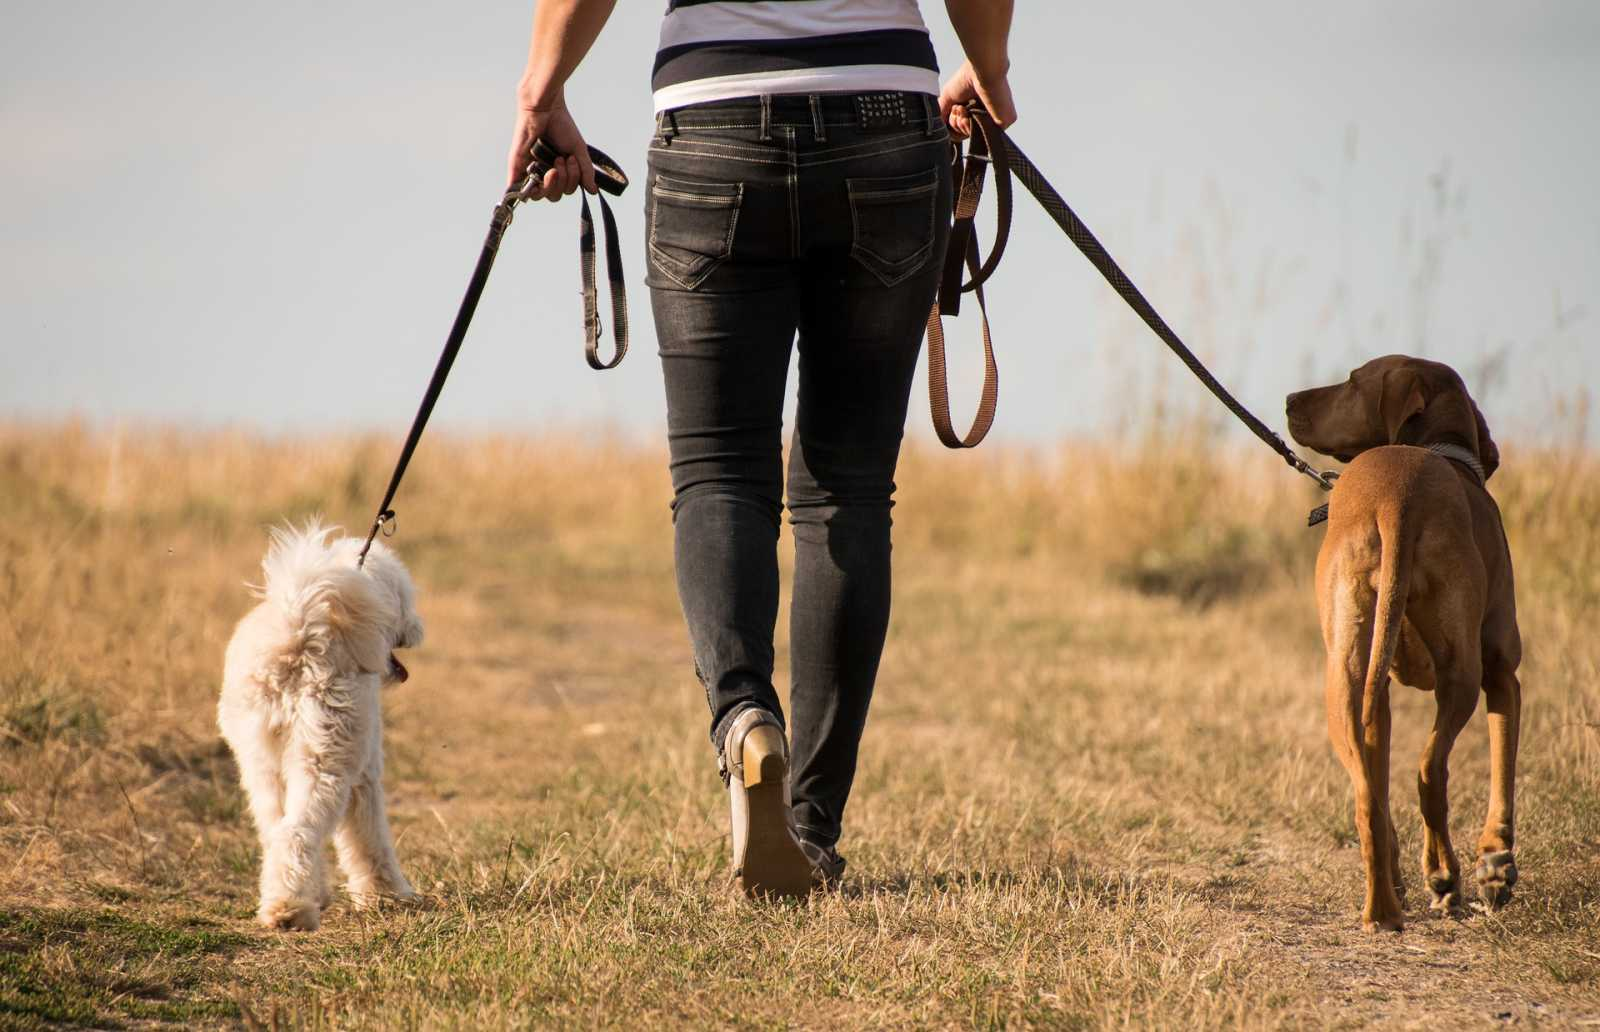 Dogs walk with a person through a field